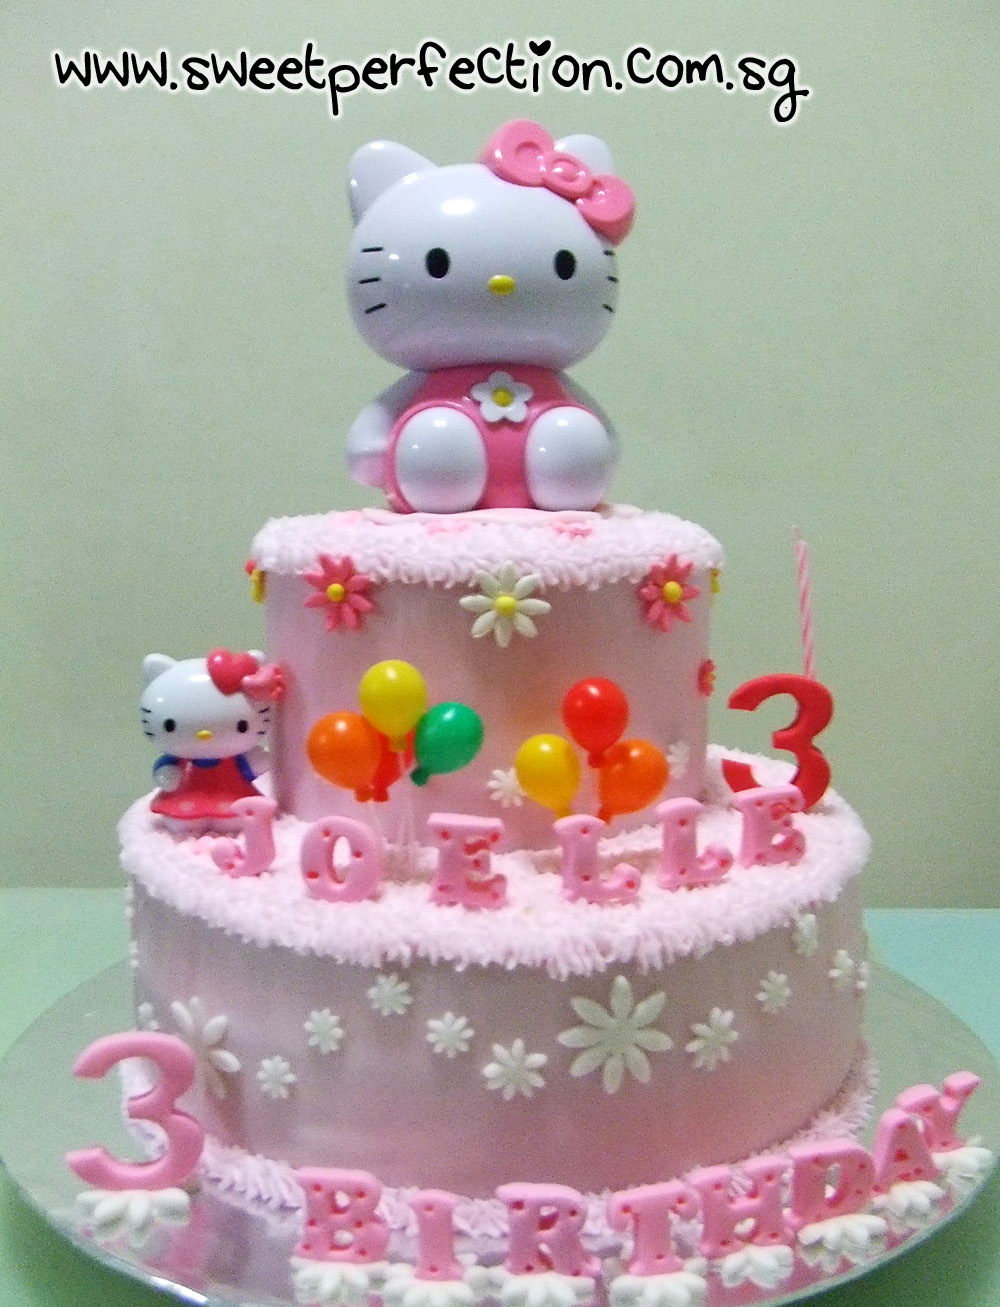 Sweet Perfection Cakes Gallery Code Hk02 Hello Kitty Joelle